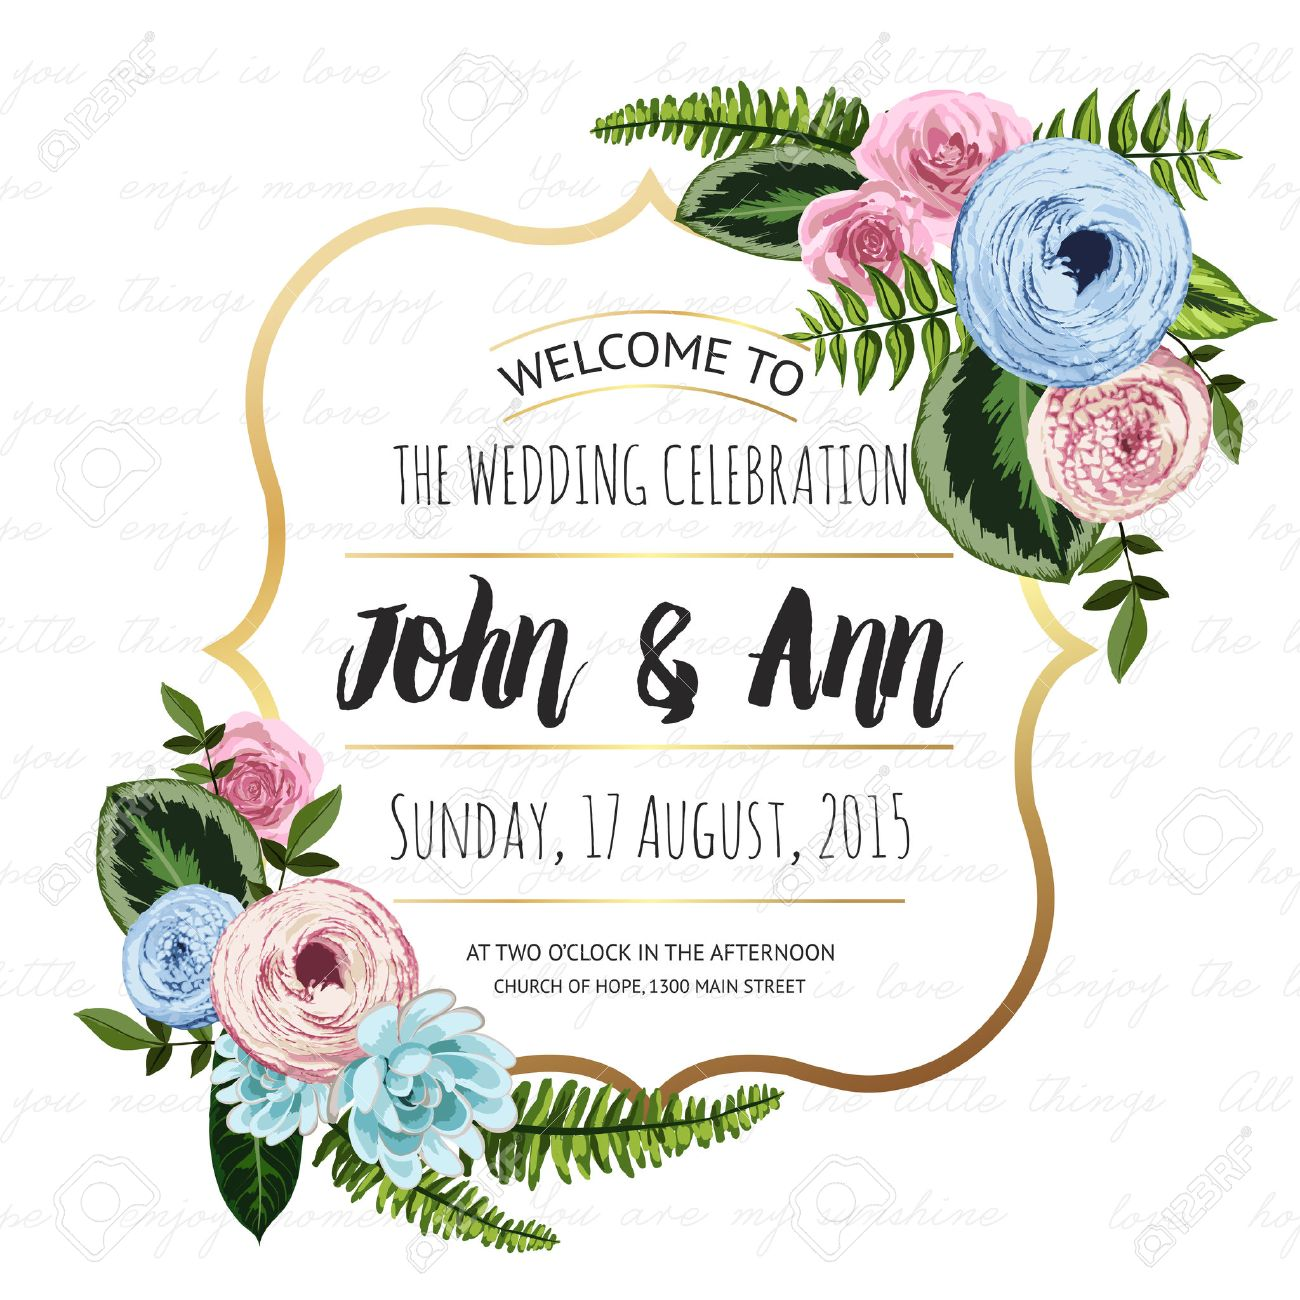 Wedding Invitation Card With Painted Flowers And Plants On Seamless